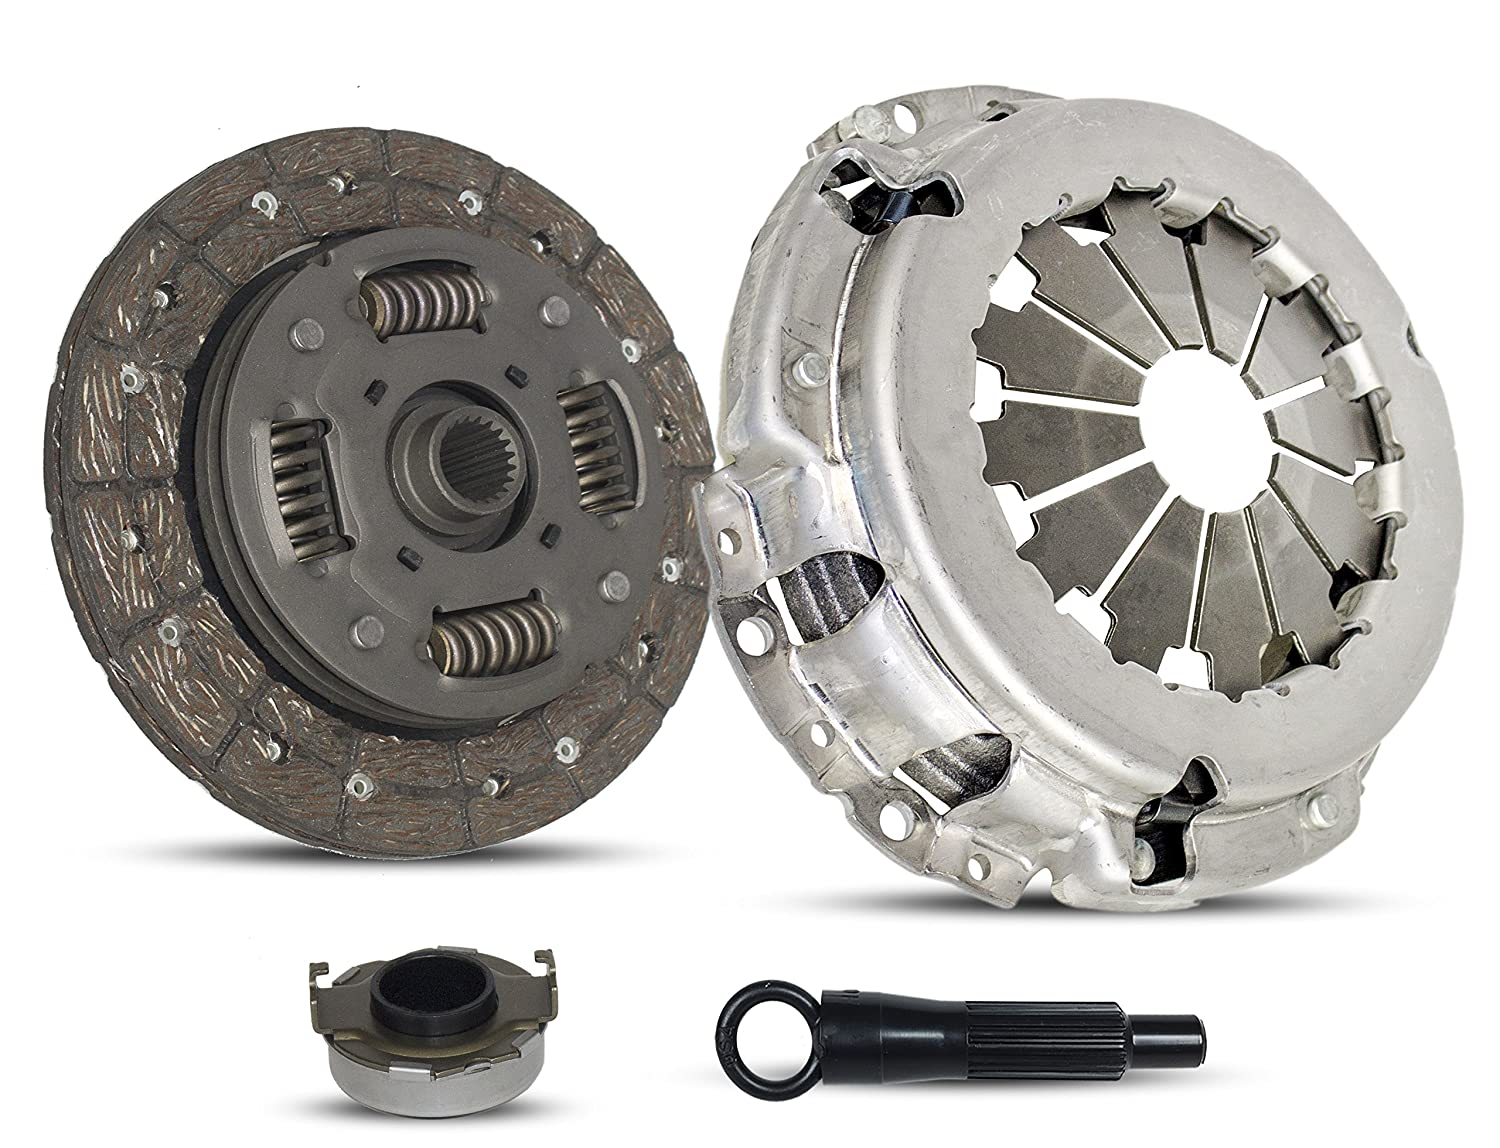 Clutch Kit Fits Honda Base Dx Ex Lx Dx-A Sport Hatchback 4-Door 2009-2014 1.5L L4 GAS SOHC Naturally Aspirated